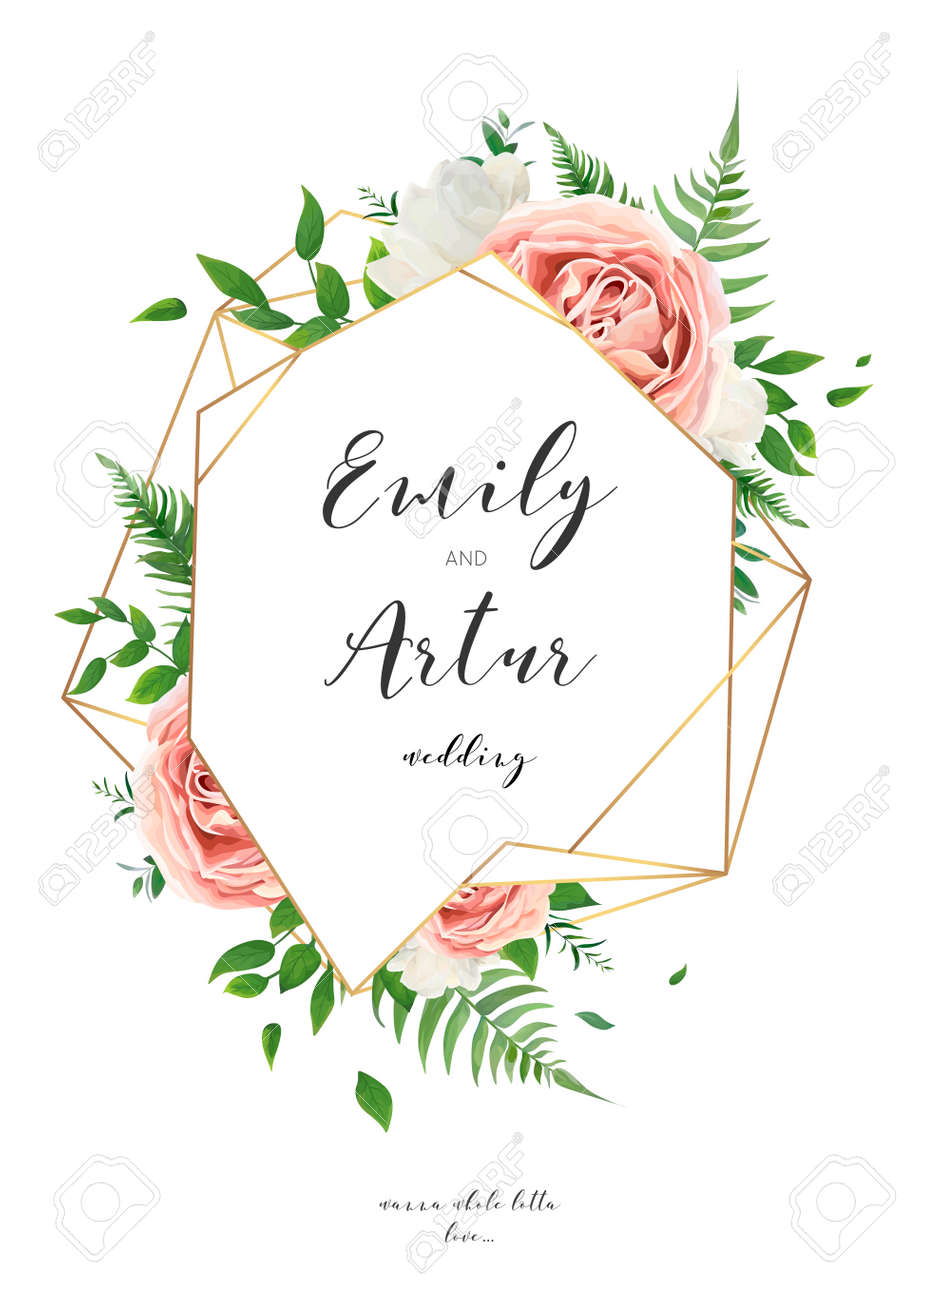 Wedding invitation, floral invite card design with creamy white garden peony flowers, blush pink roses, green leaves, greenery fern and golden geometrical frame decoration. Vector elegant illustration - 102514154